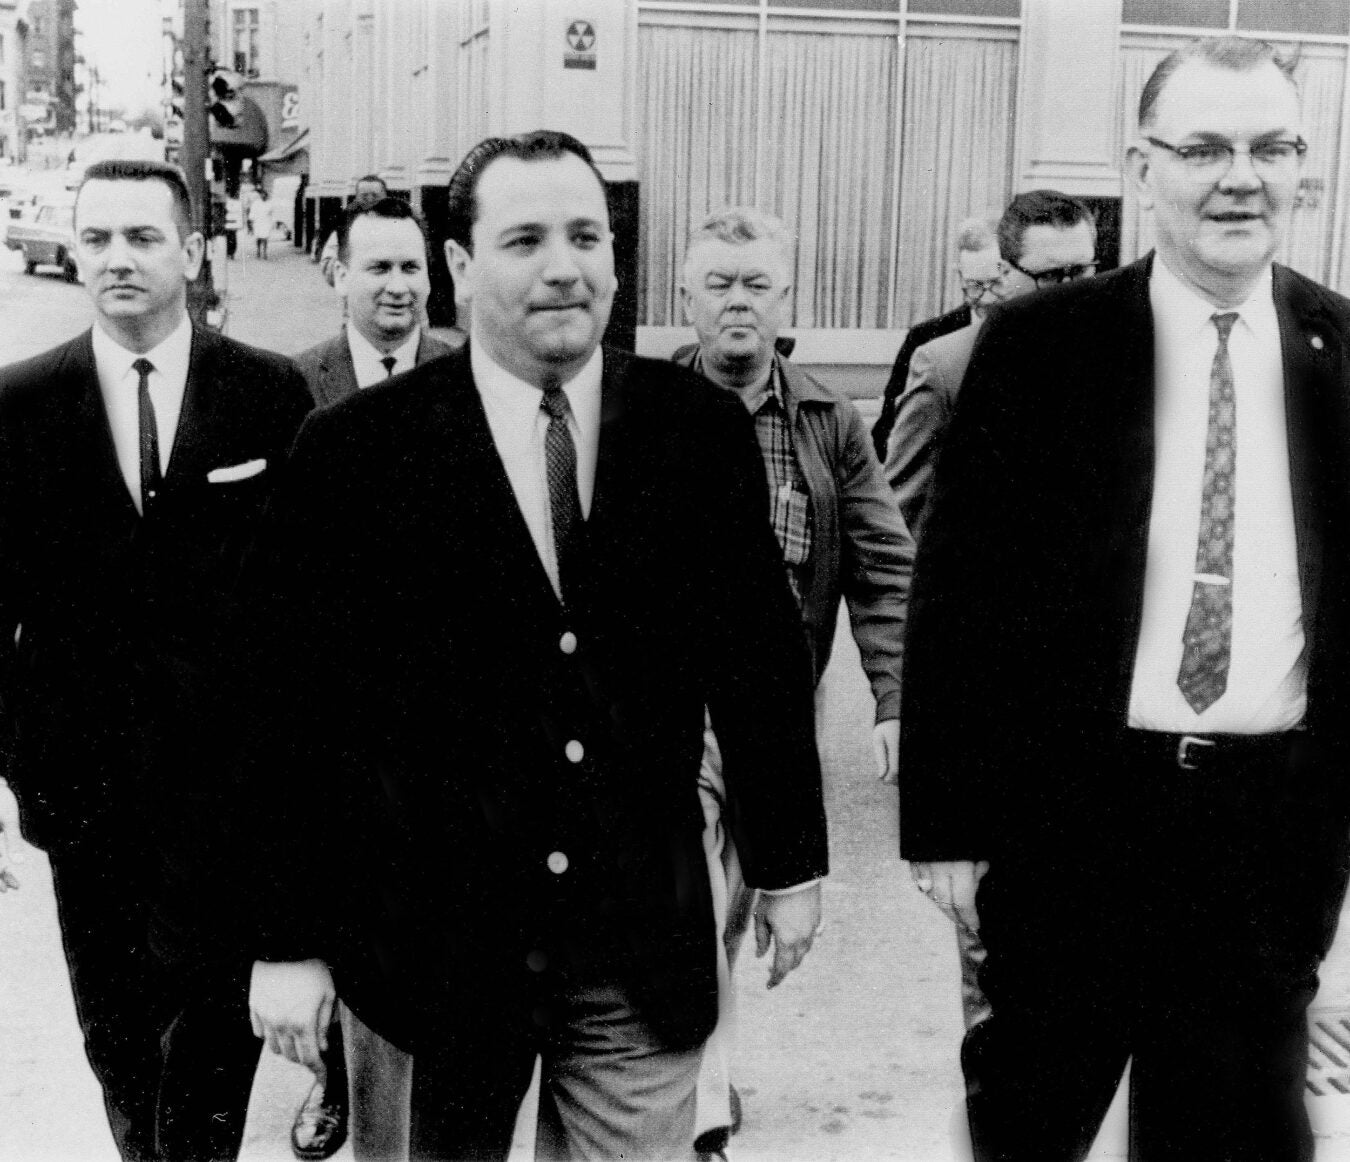 Charles L. O'Brien, center, is accompanied by U.S. marshals